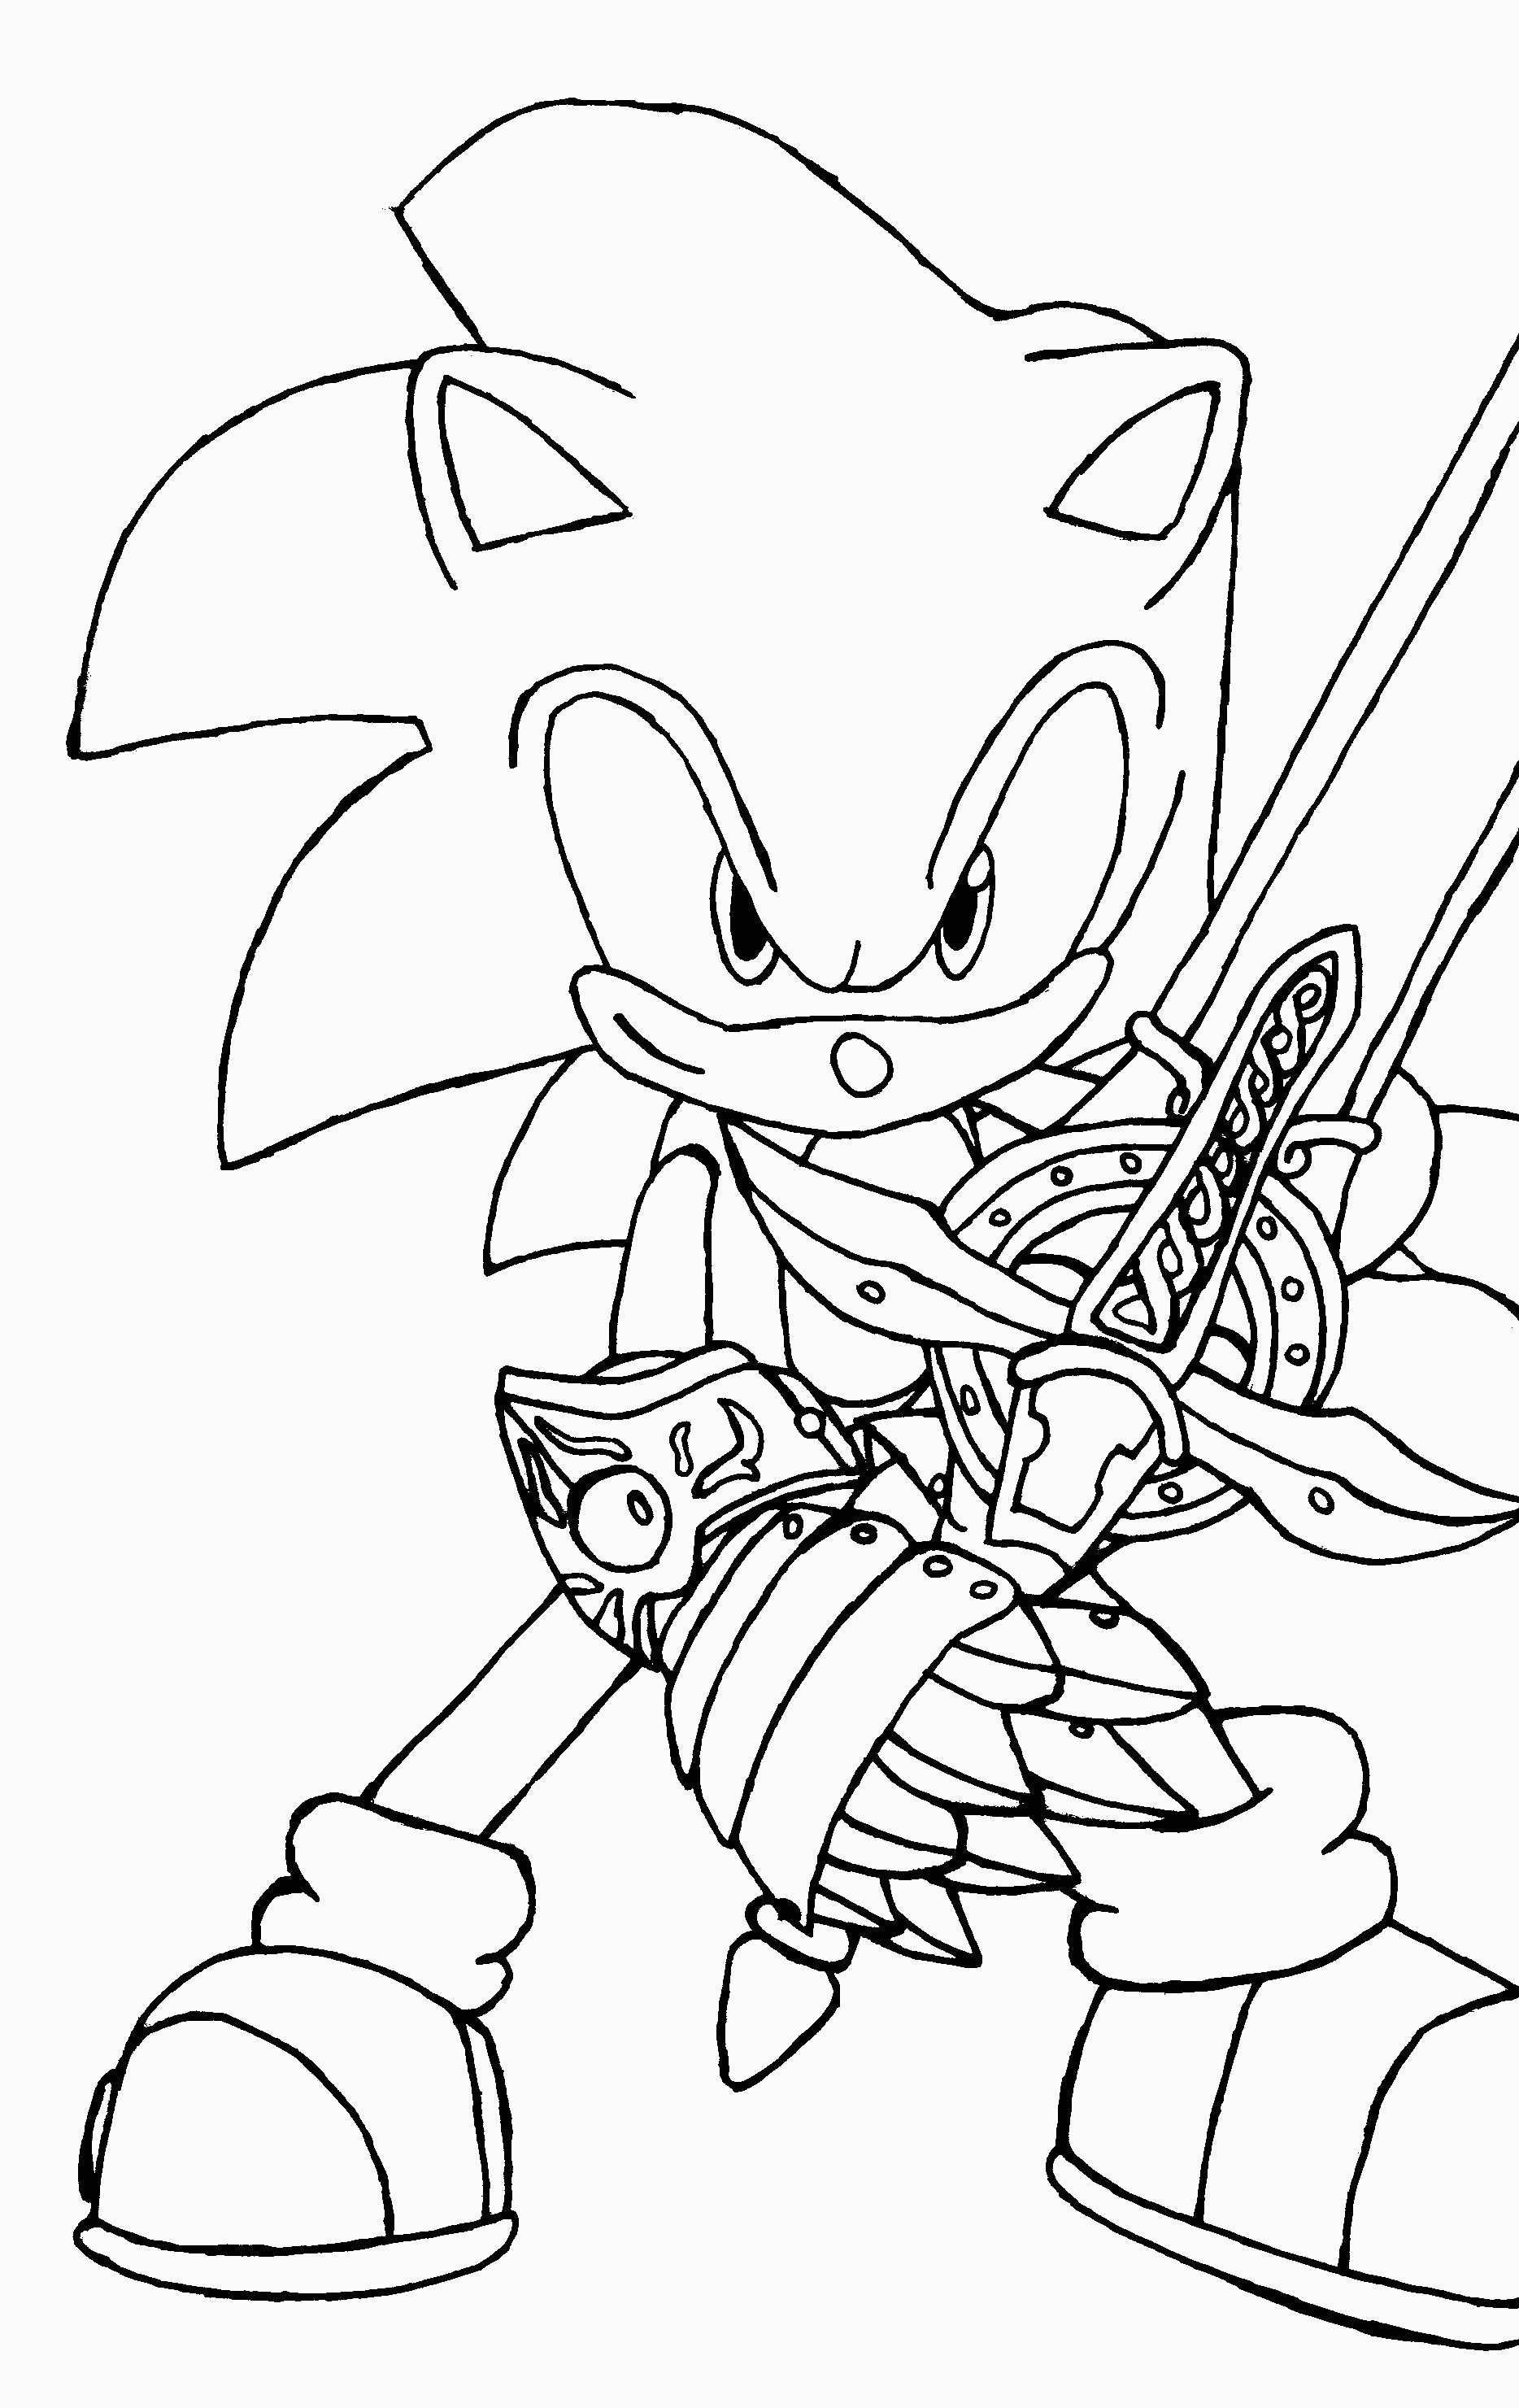 Sonic Coloring Book | Printable Coloring Pages - Sonic Coloring Pages Free Printable